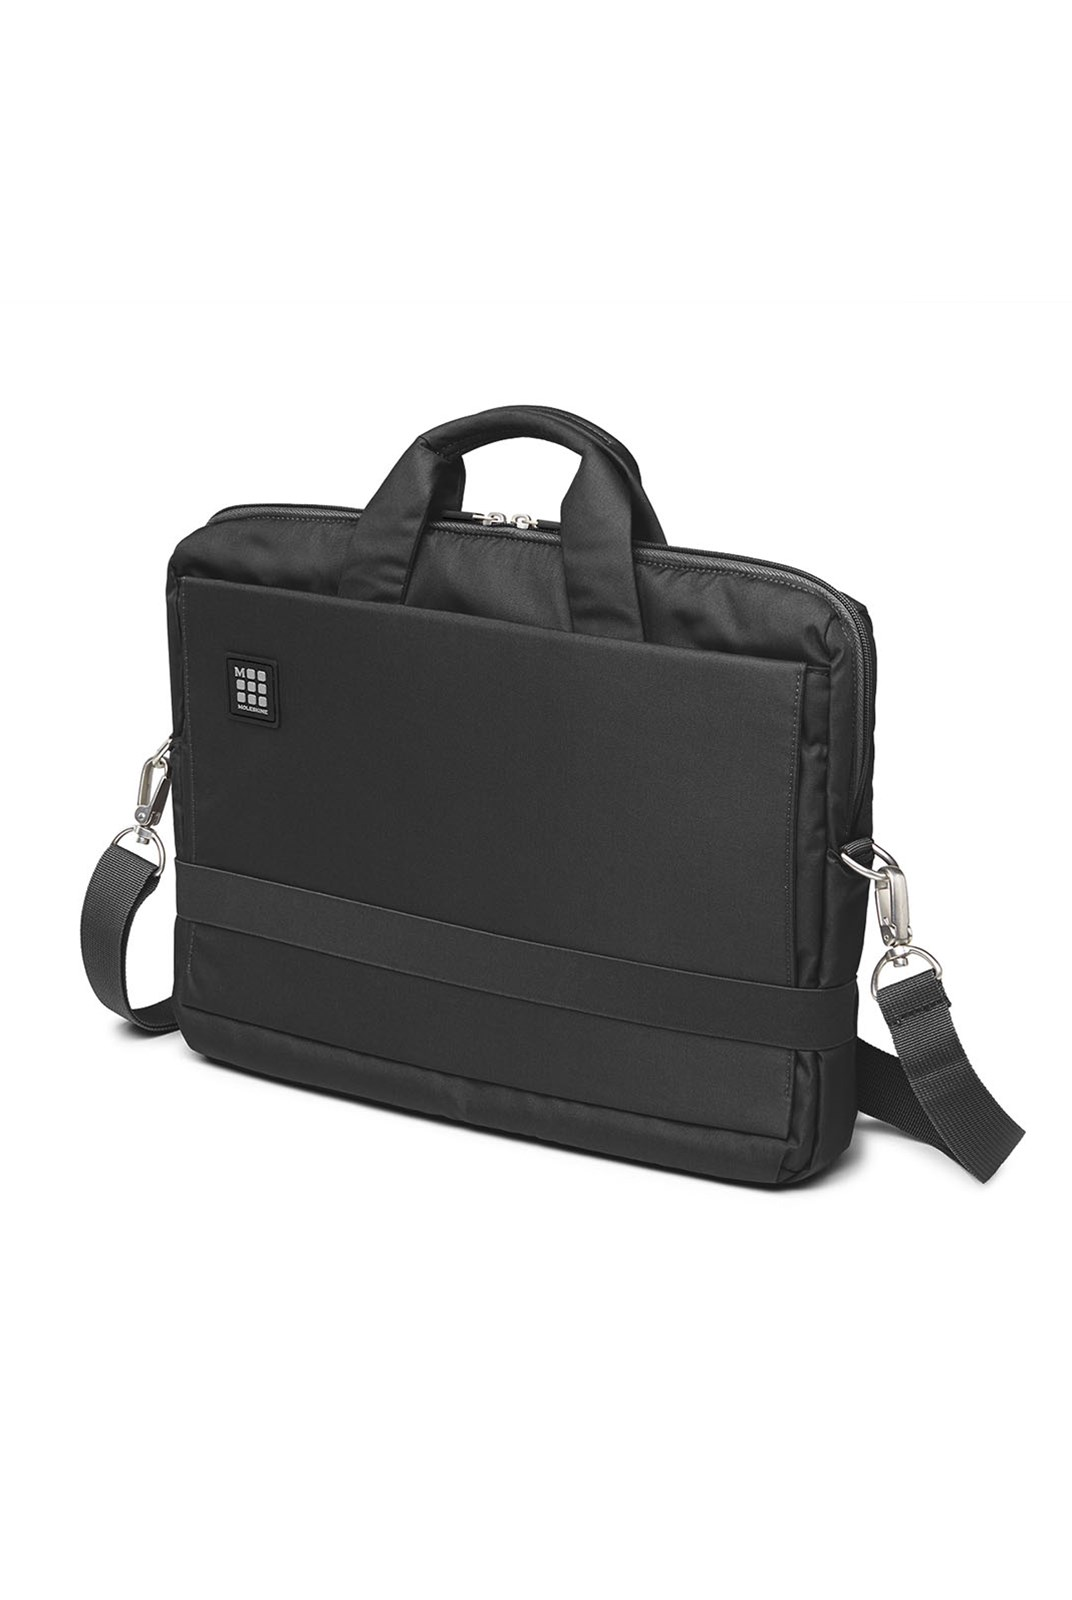 "Moleskine - ID Device Bag - Horizontal - 15"" - Black"